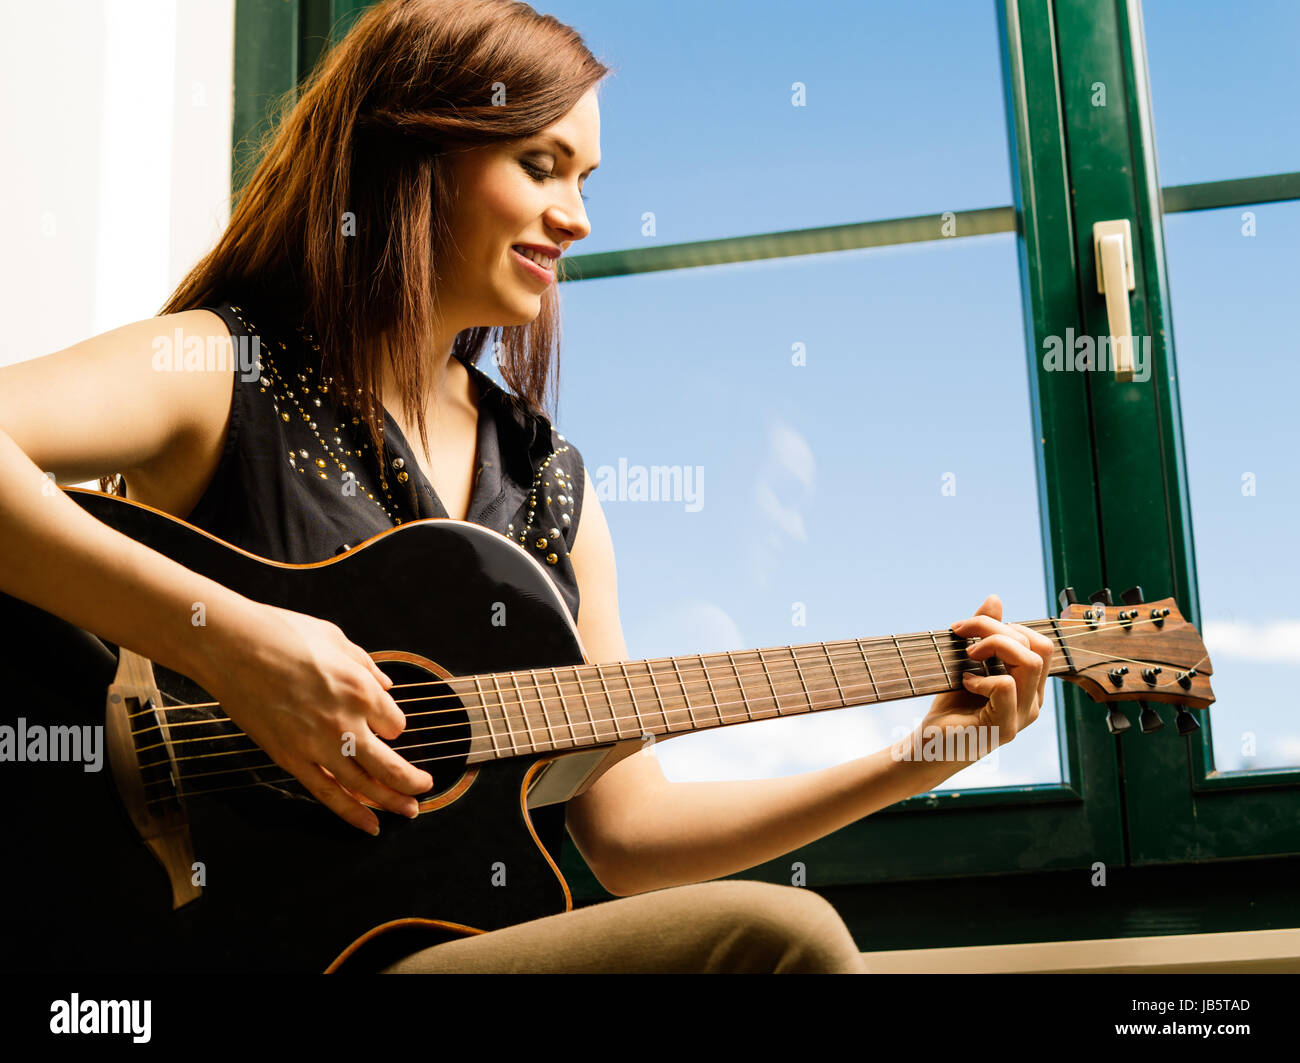 Photo of a smiling woman in her late twenties playing an acoustic guitar by a large window. - Stock Image